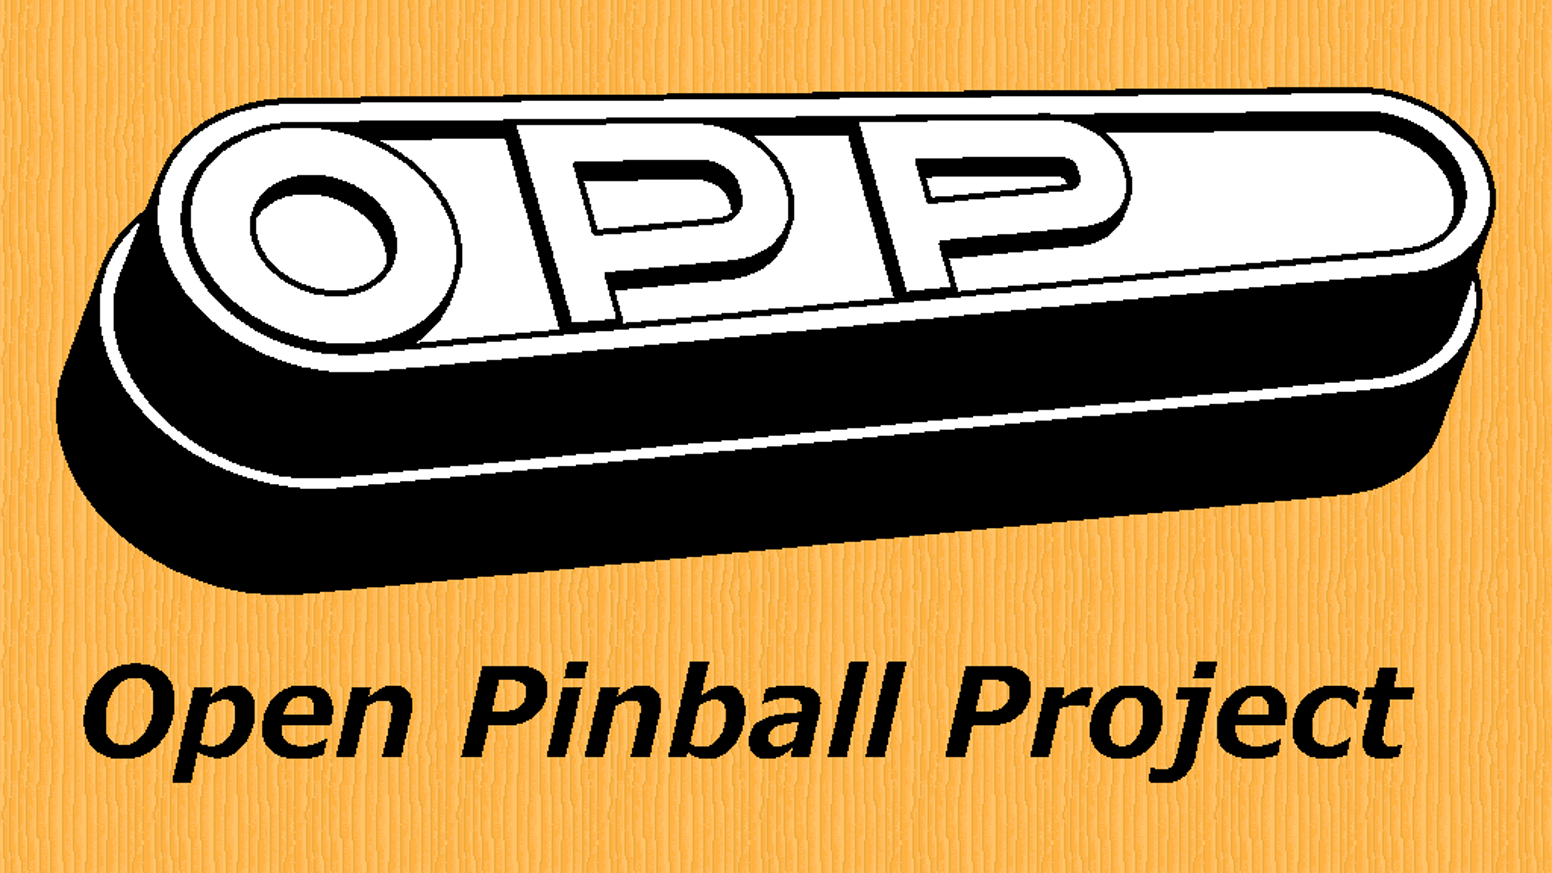 Open Pinball Project - Open Source Pinball Hardware for All by Hugh